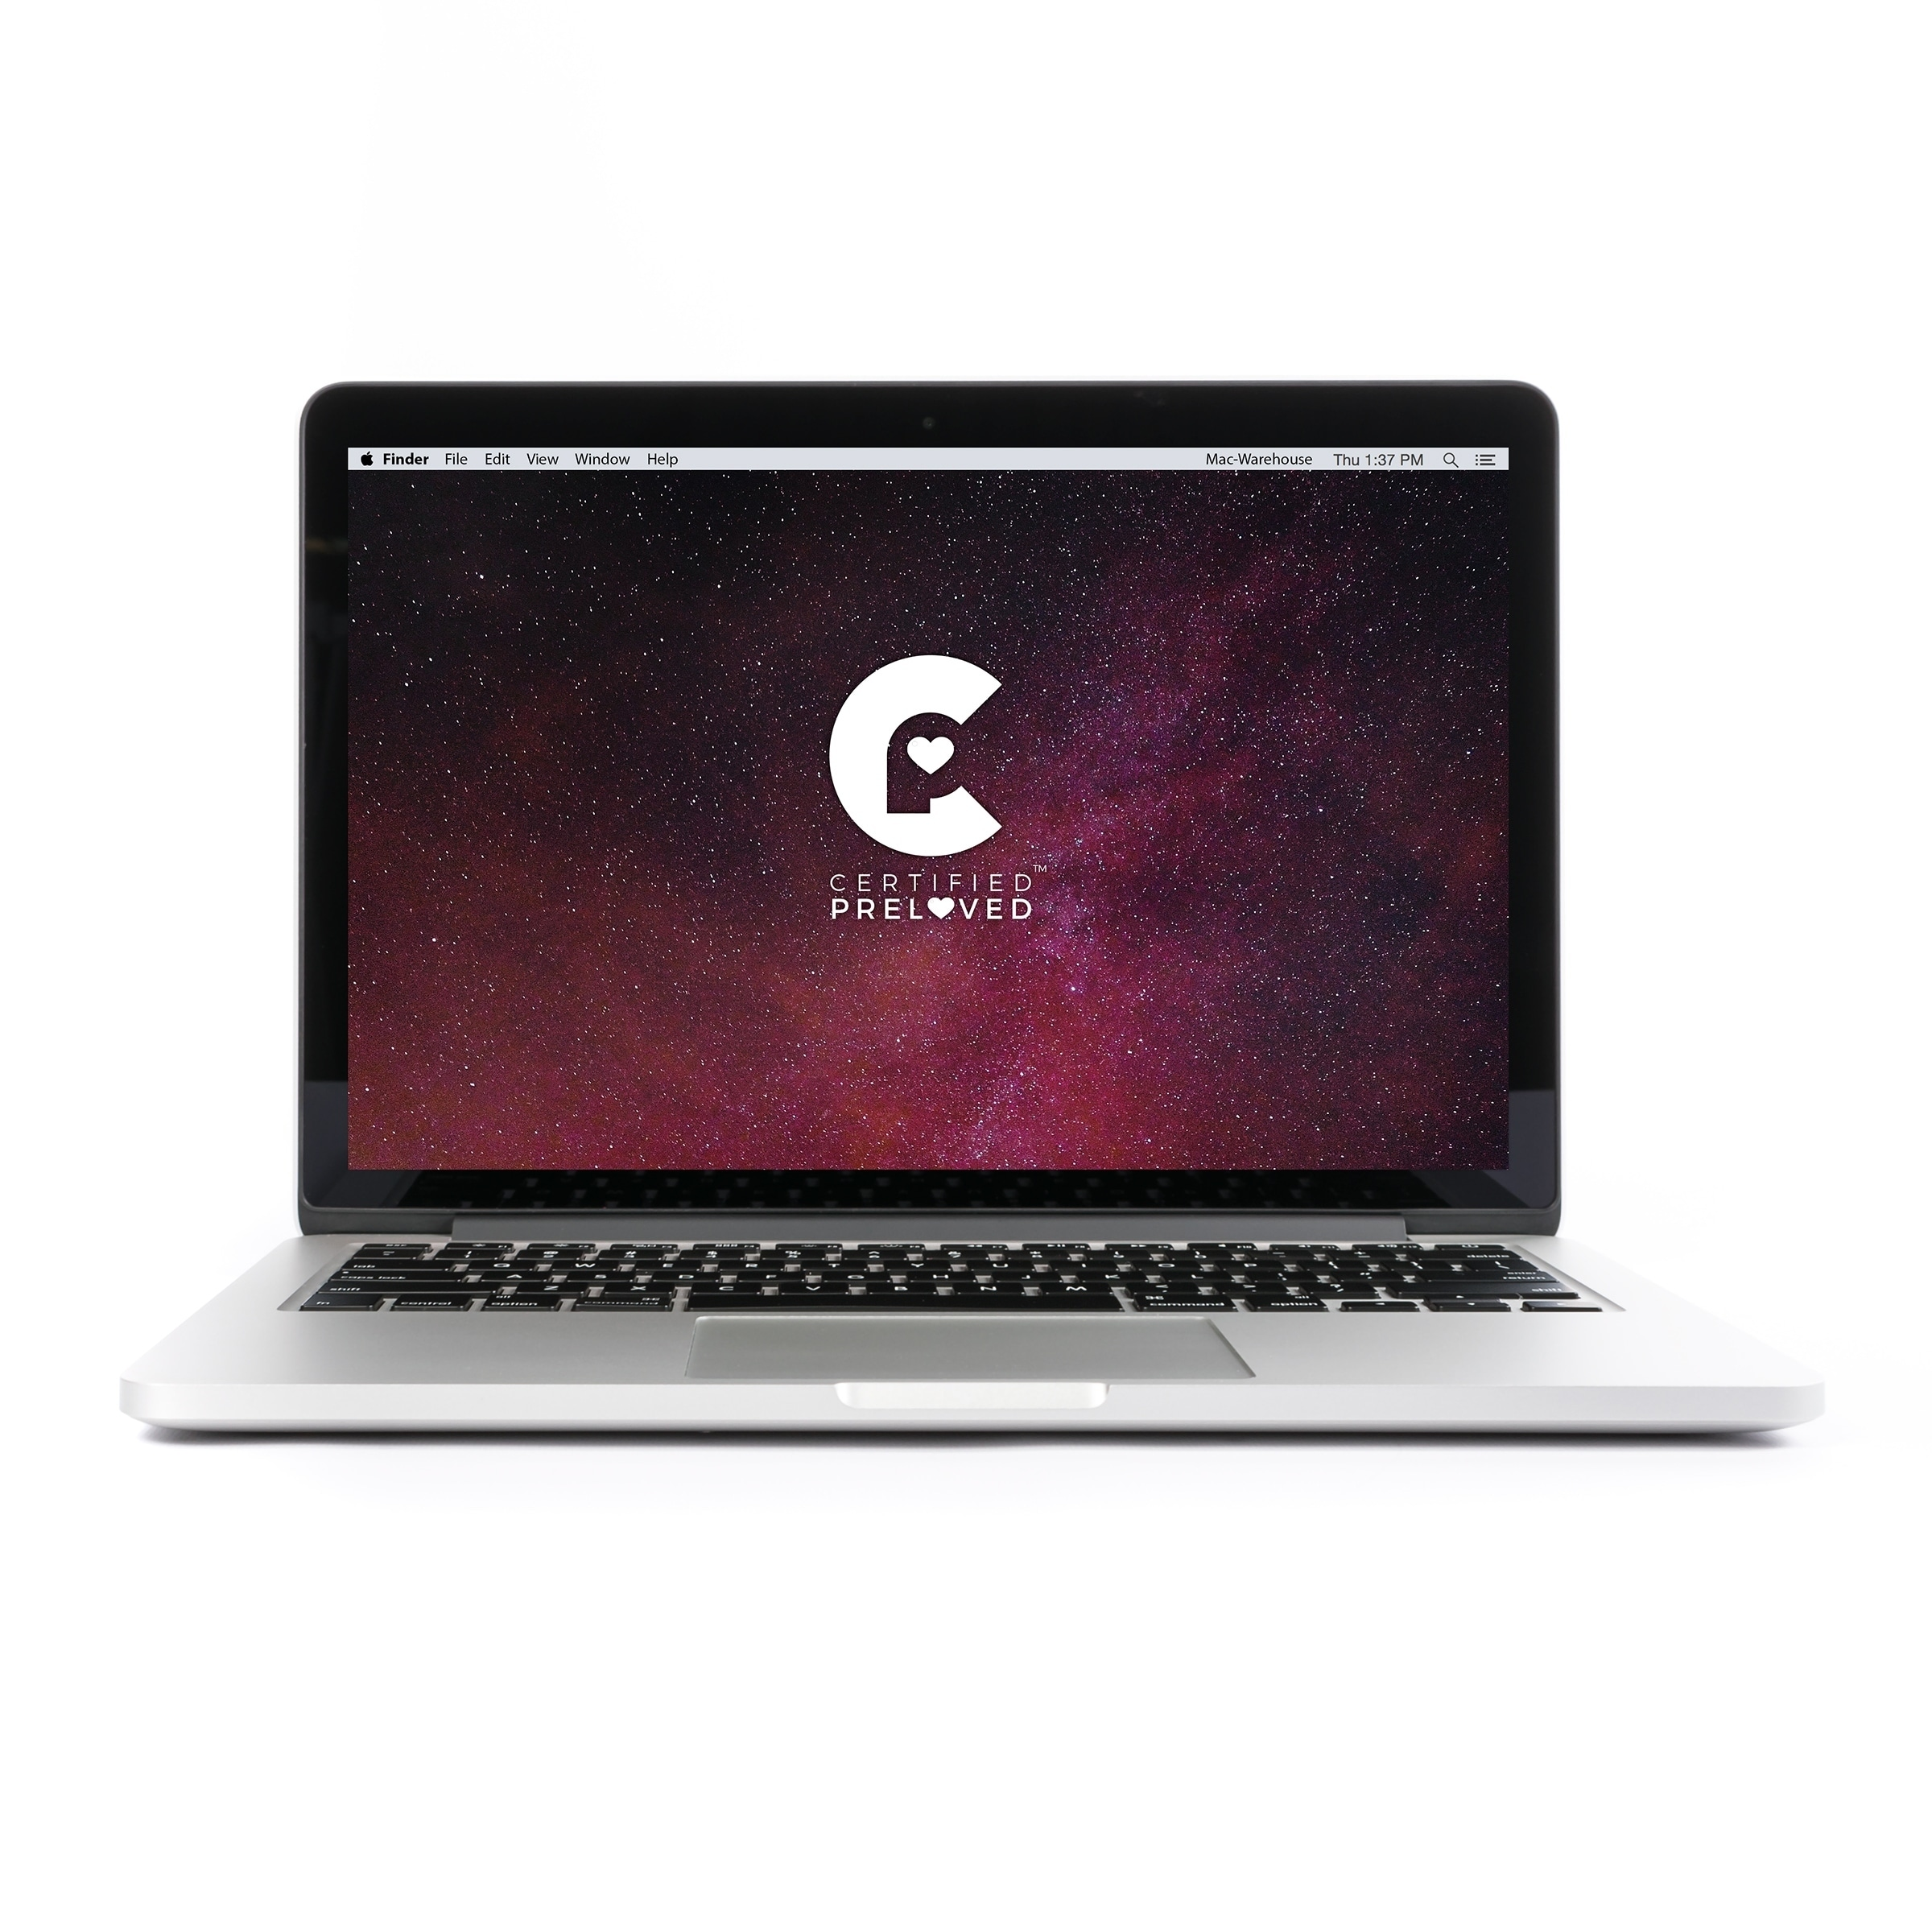 Apple ME865LL/A 13.3 inch Macbook Pro Retina DCi5 2.4 GHz - Refurbished by Overstock 512gb flash - 8 GB